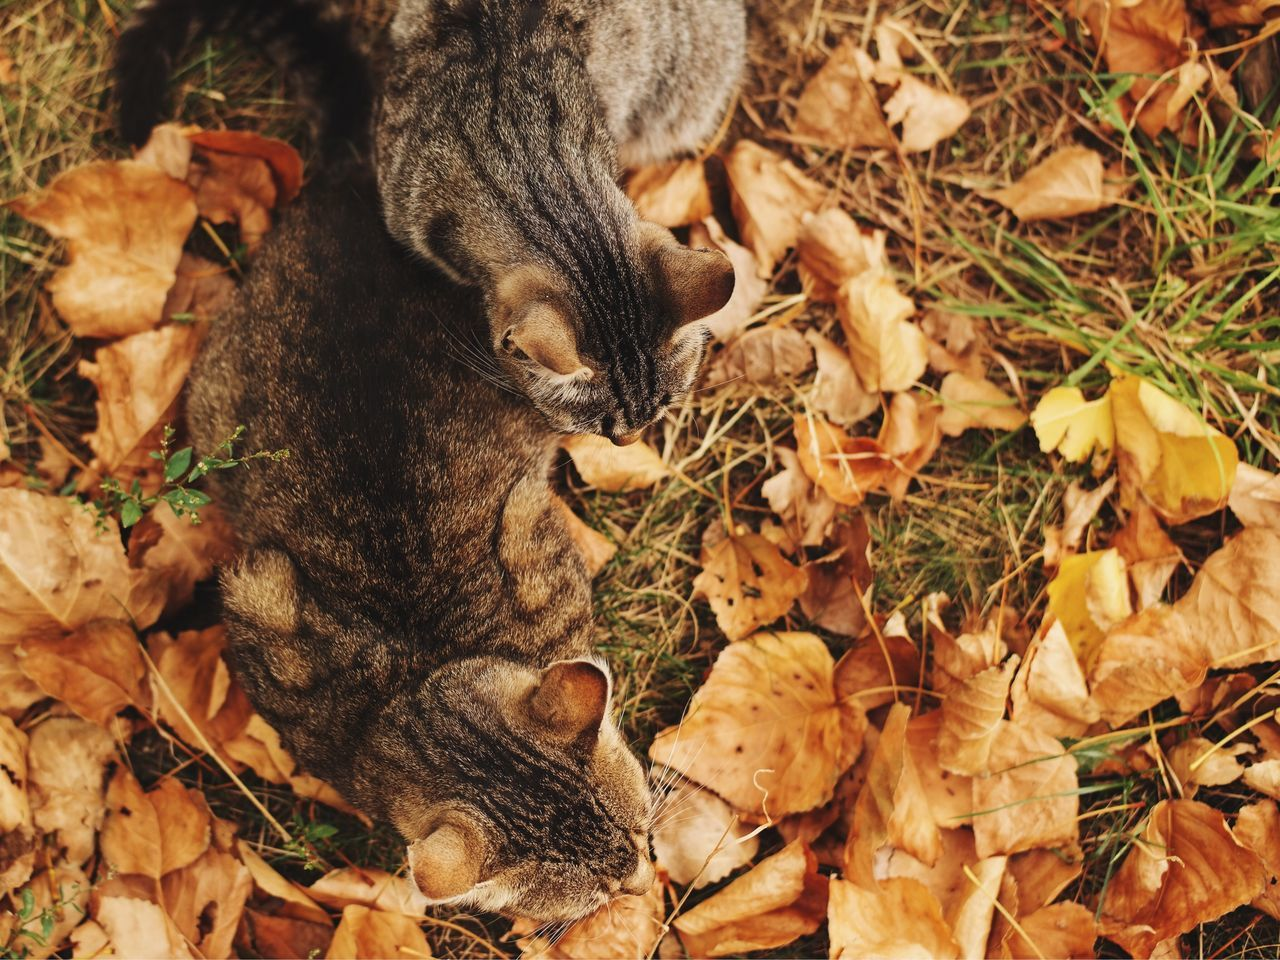 Furry camouflage... Leaf High Angle View Feline Nature Grass Autumn Leaves Autumn Colors Fall Colors Fall Leaves Cat Domestic Cat Animal Themes Pets Close-up Kitty Kitten Kittens Cats Furry Furry Friends Made In Romania Found On The Roll My Favorite Photo Details Of My Life What Who Where